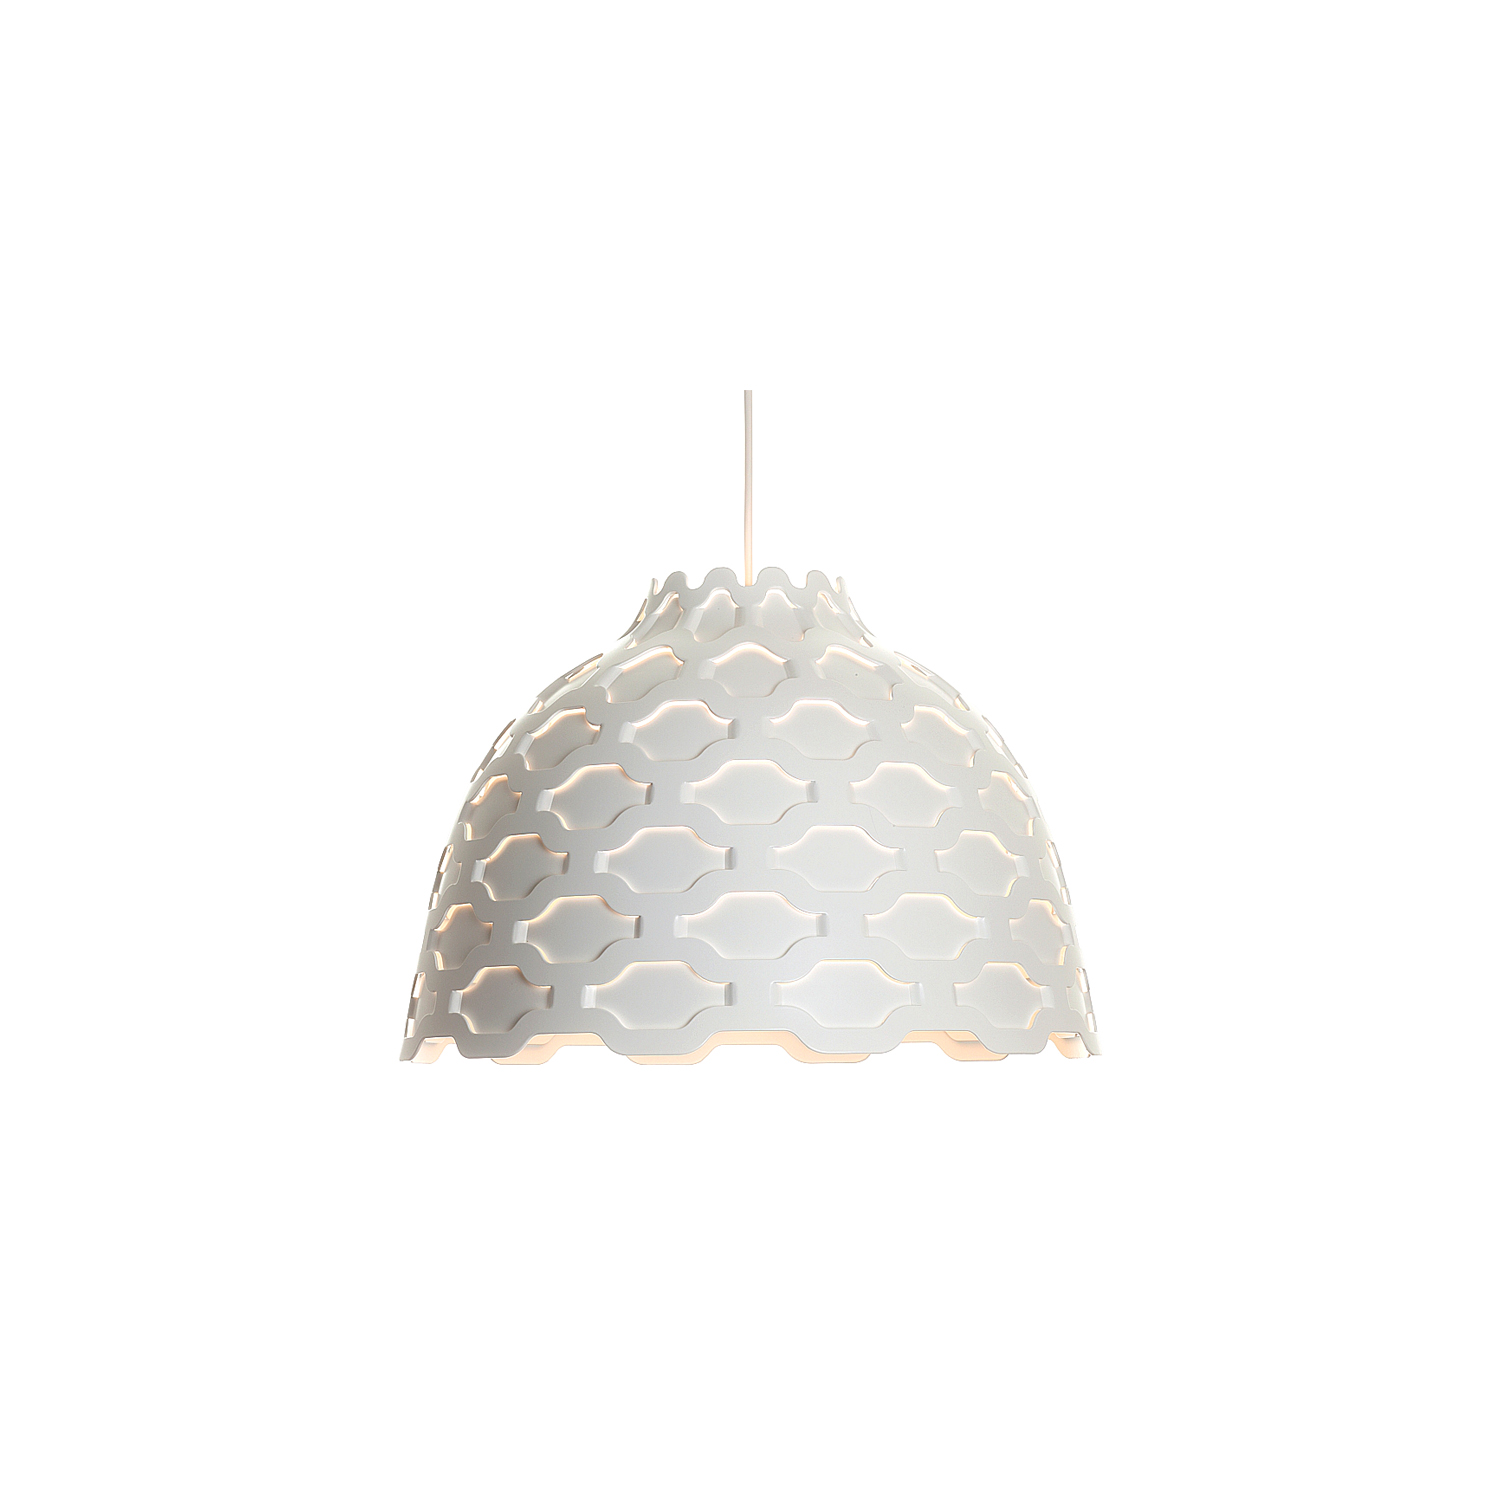 LC Shutters Pendant Lamp - The fixture emits a primarily downward illumination. The perforated pattern on the shade provides a soft illumination around the fixture. Meanwhile, the perforation helps to lighten up the surface of the shade in a decorative way, when it is turned on, thereby maintaining the contour of the fixture, whether it is on or off. The light source is surrounded by an opal diffuser, which ensures that the fixture is 100% glare-free and that the fixture is suitable for several types of light sources providing the same light distribution and comfort. And finally, the shape of the diffuser allows a beautiful view into the fixture.   | Matter of Stuff